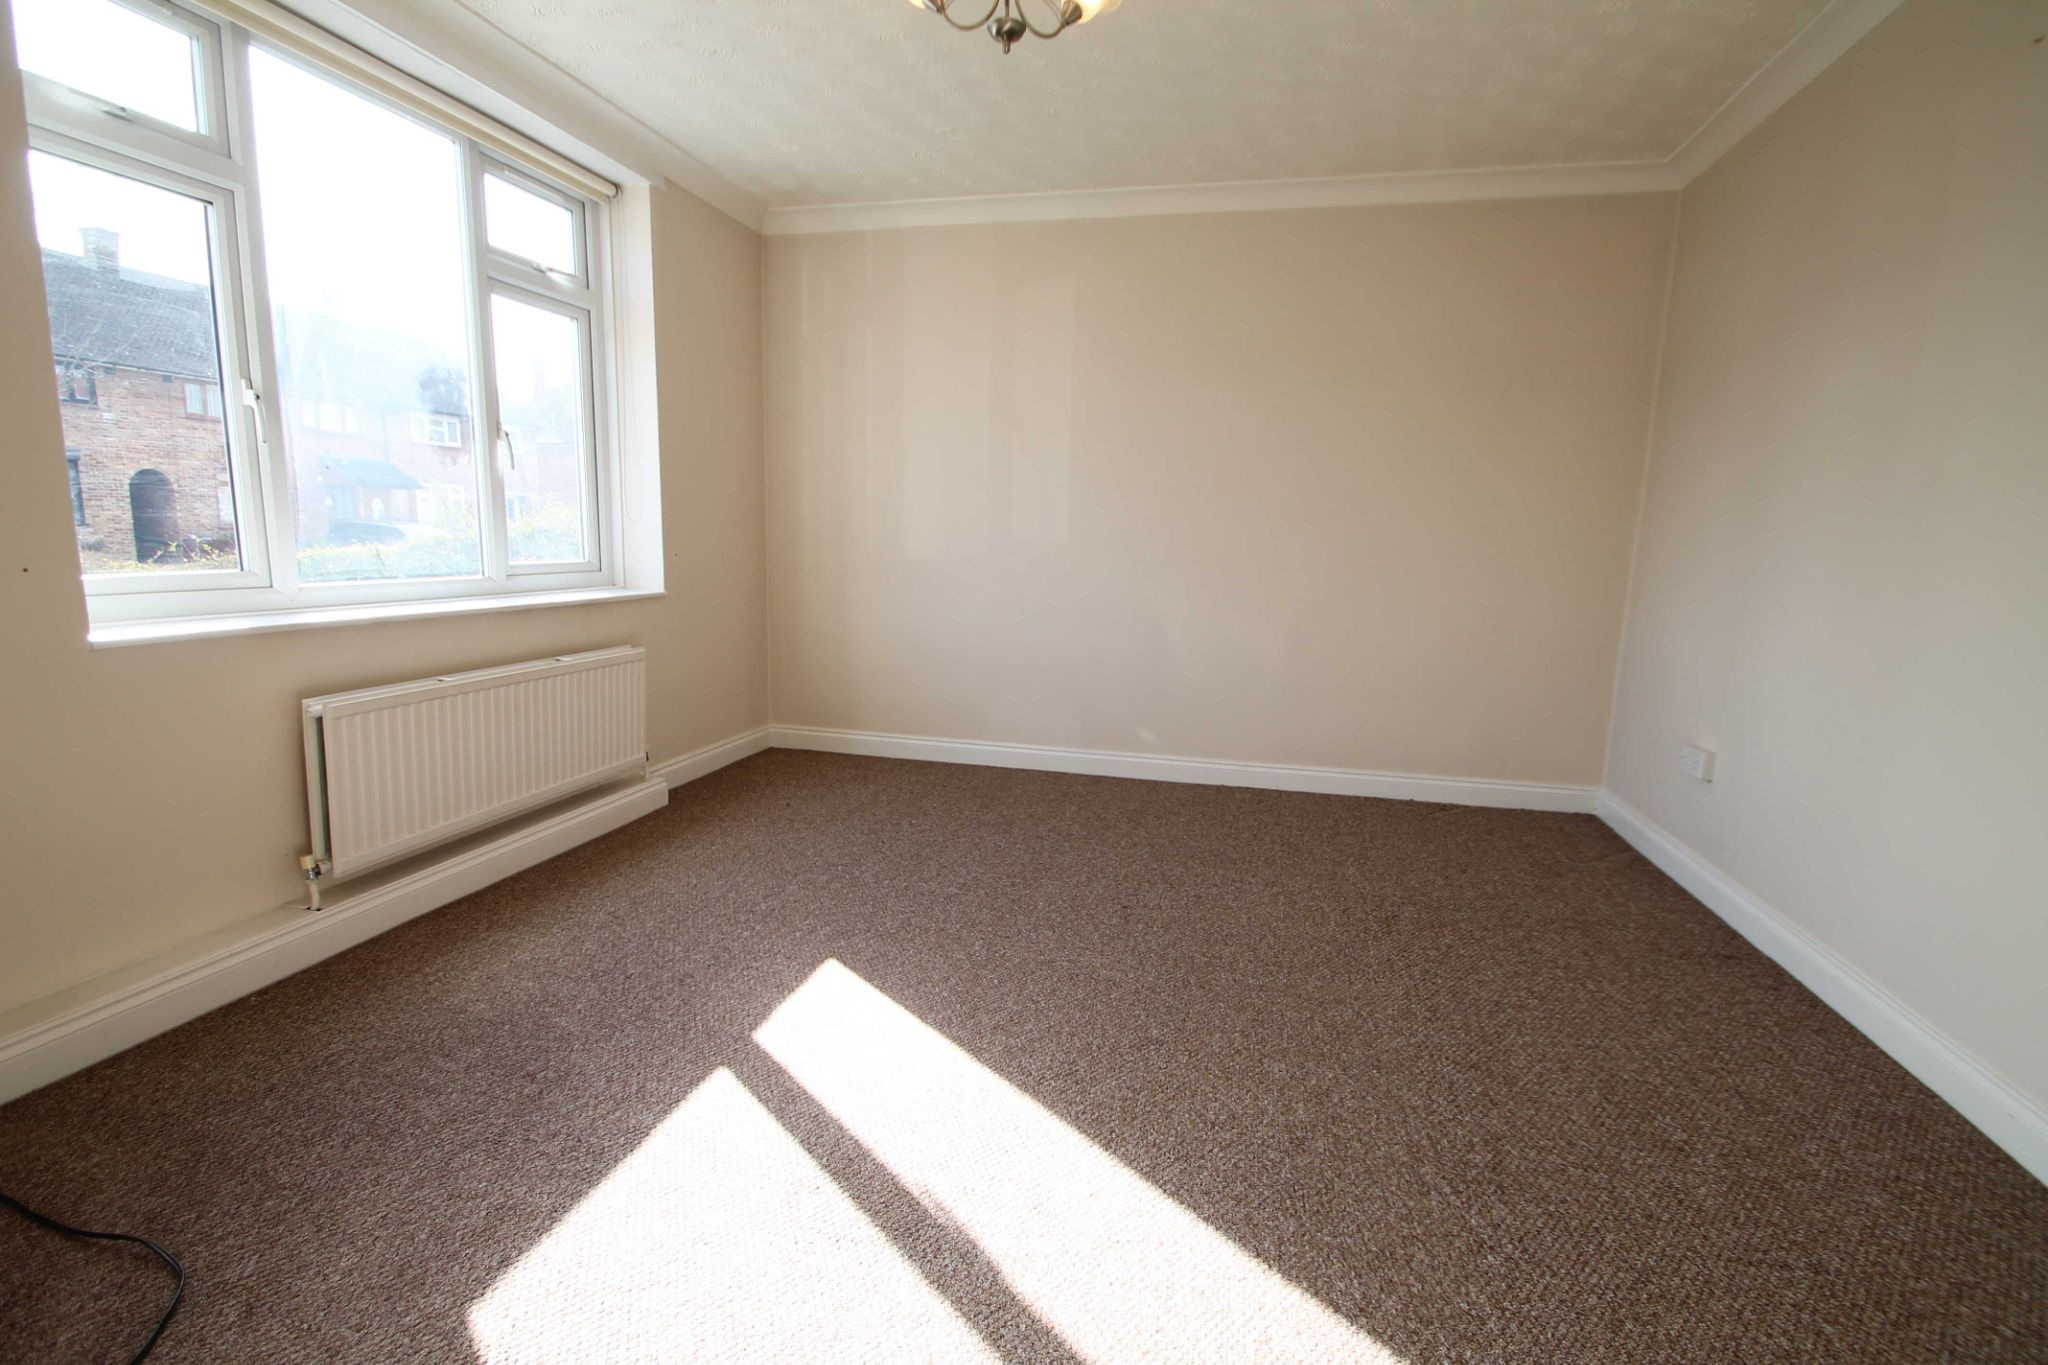 4 Bedroom Mid Terraced House For Sale - Lounge